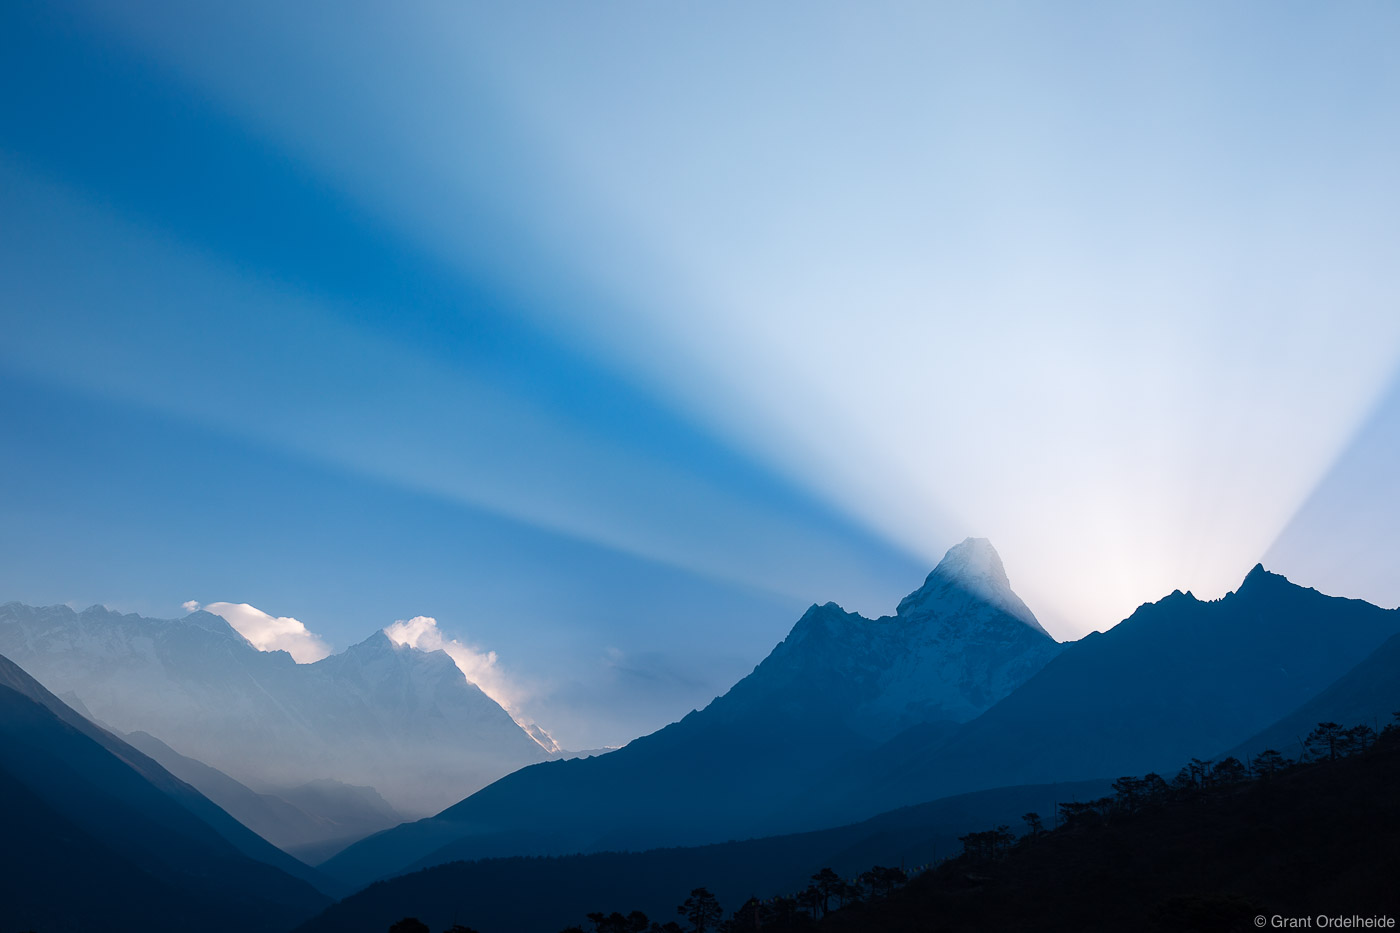 light, beams, ama dablam, godbeams, sagarmatha, national park, himalaya, nepal, everest, lhotse, village, tengboche, photo